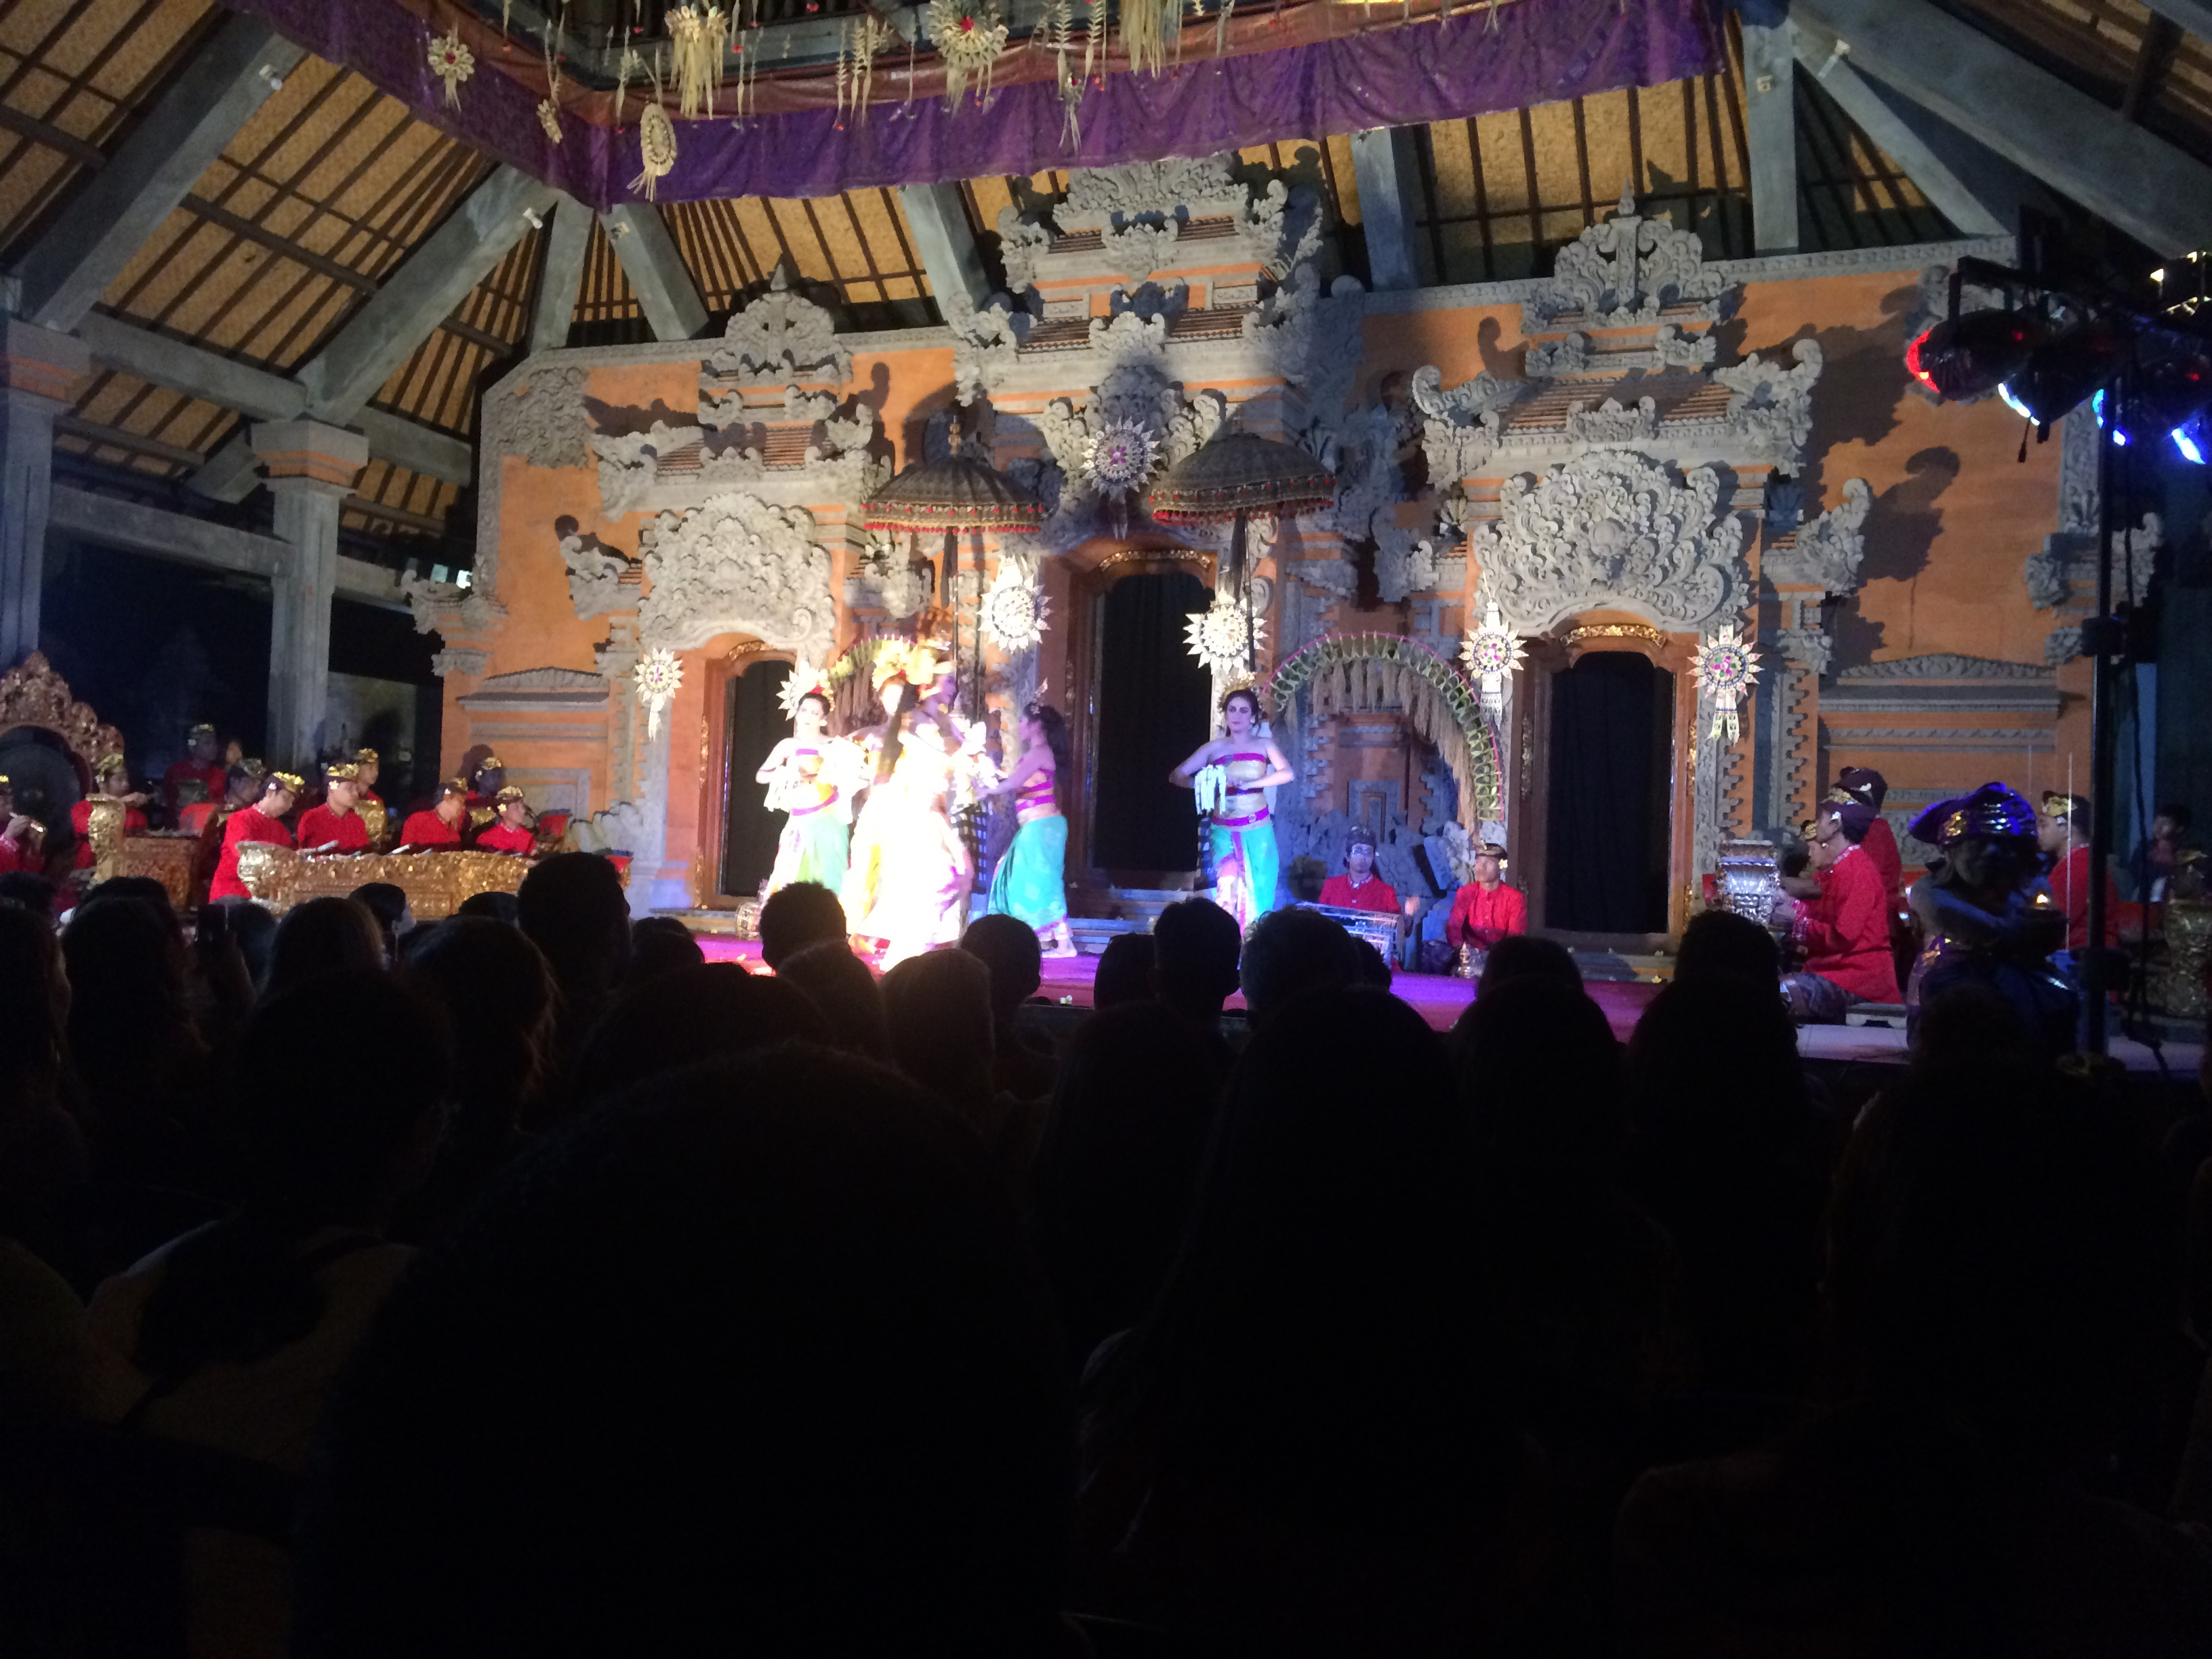 Balinese dance drama of the Ramayana in Ubud.